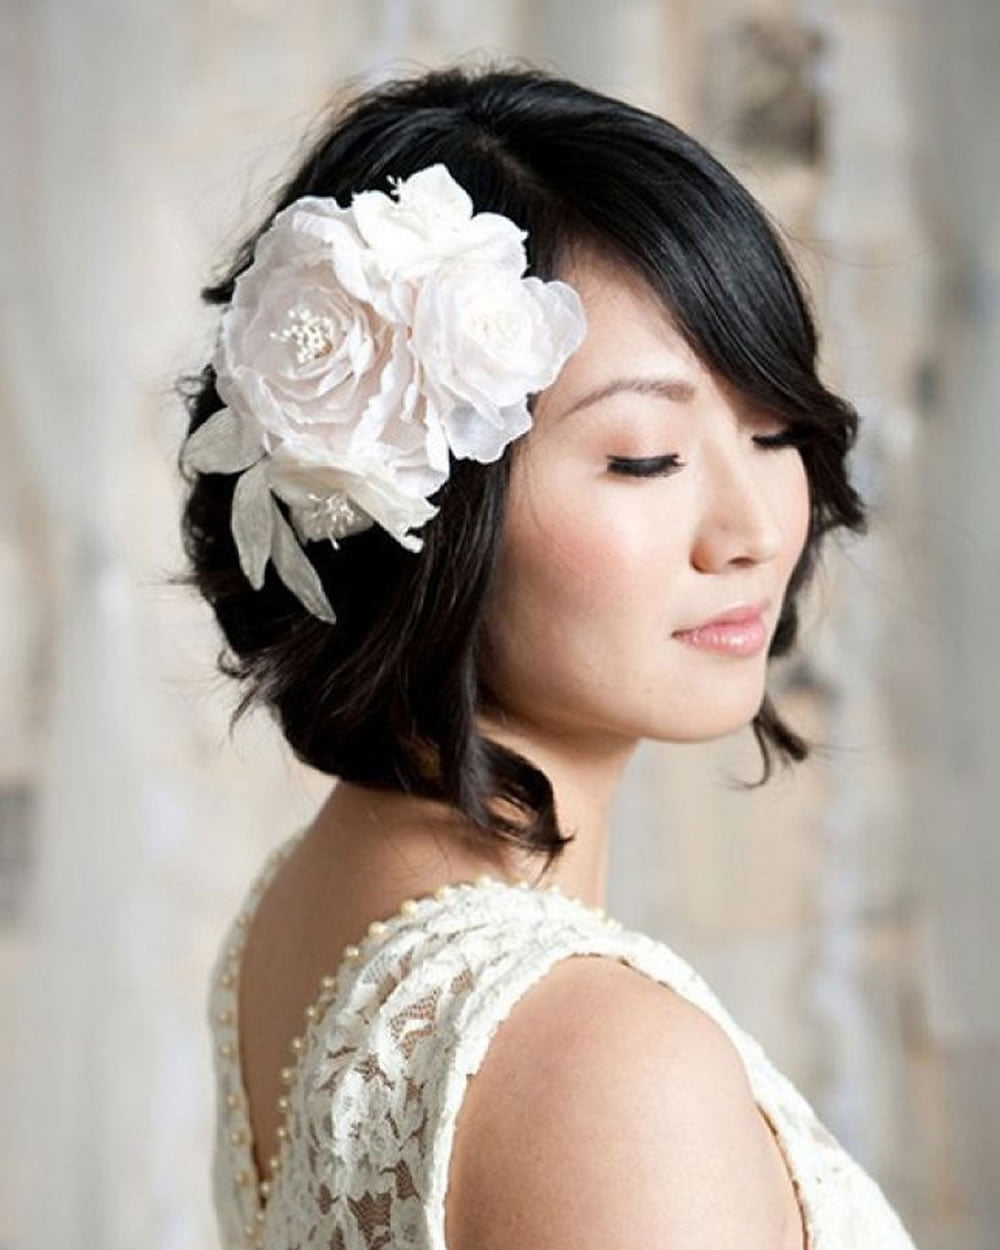 2018 Wedding Hairstyles And Make Up Guide For Short Hair Page 2